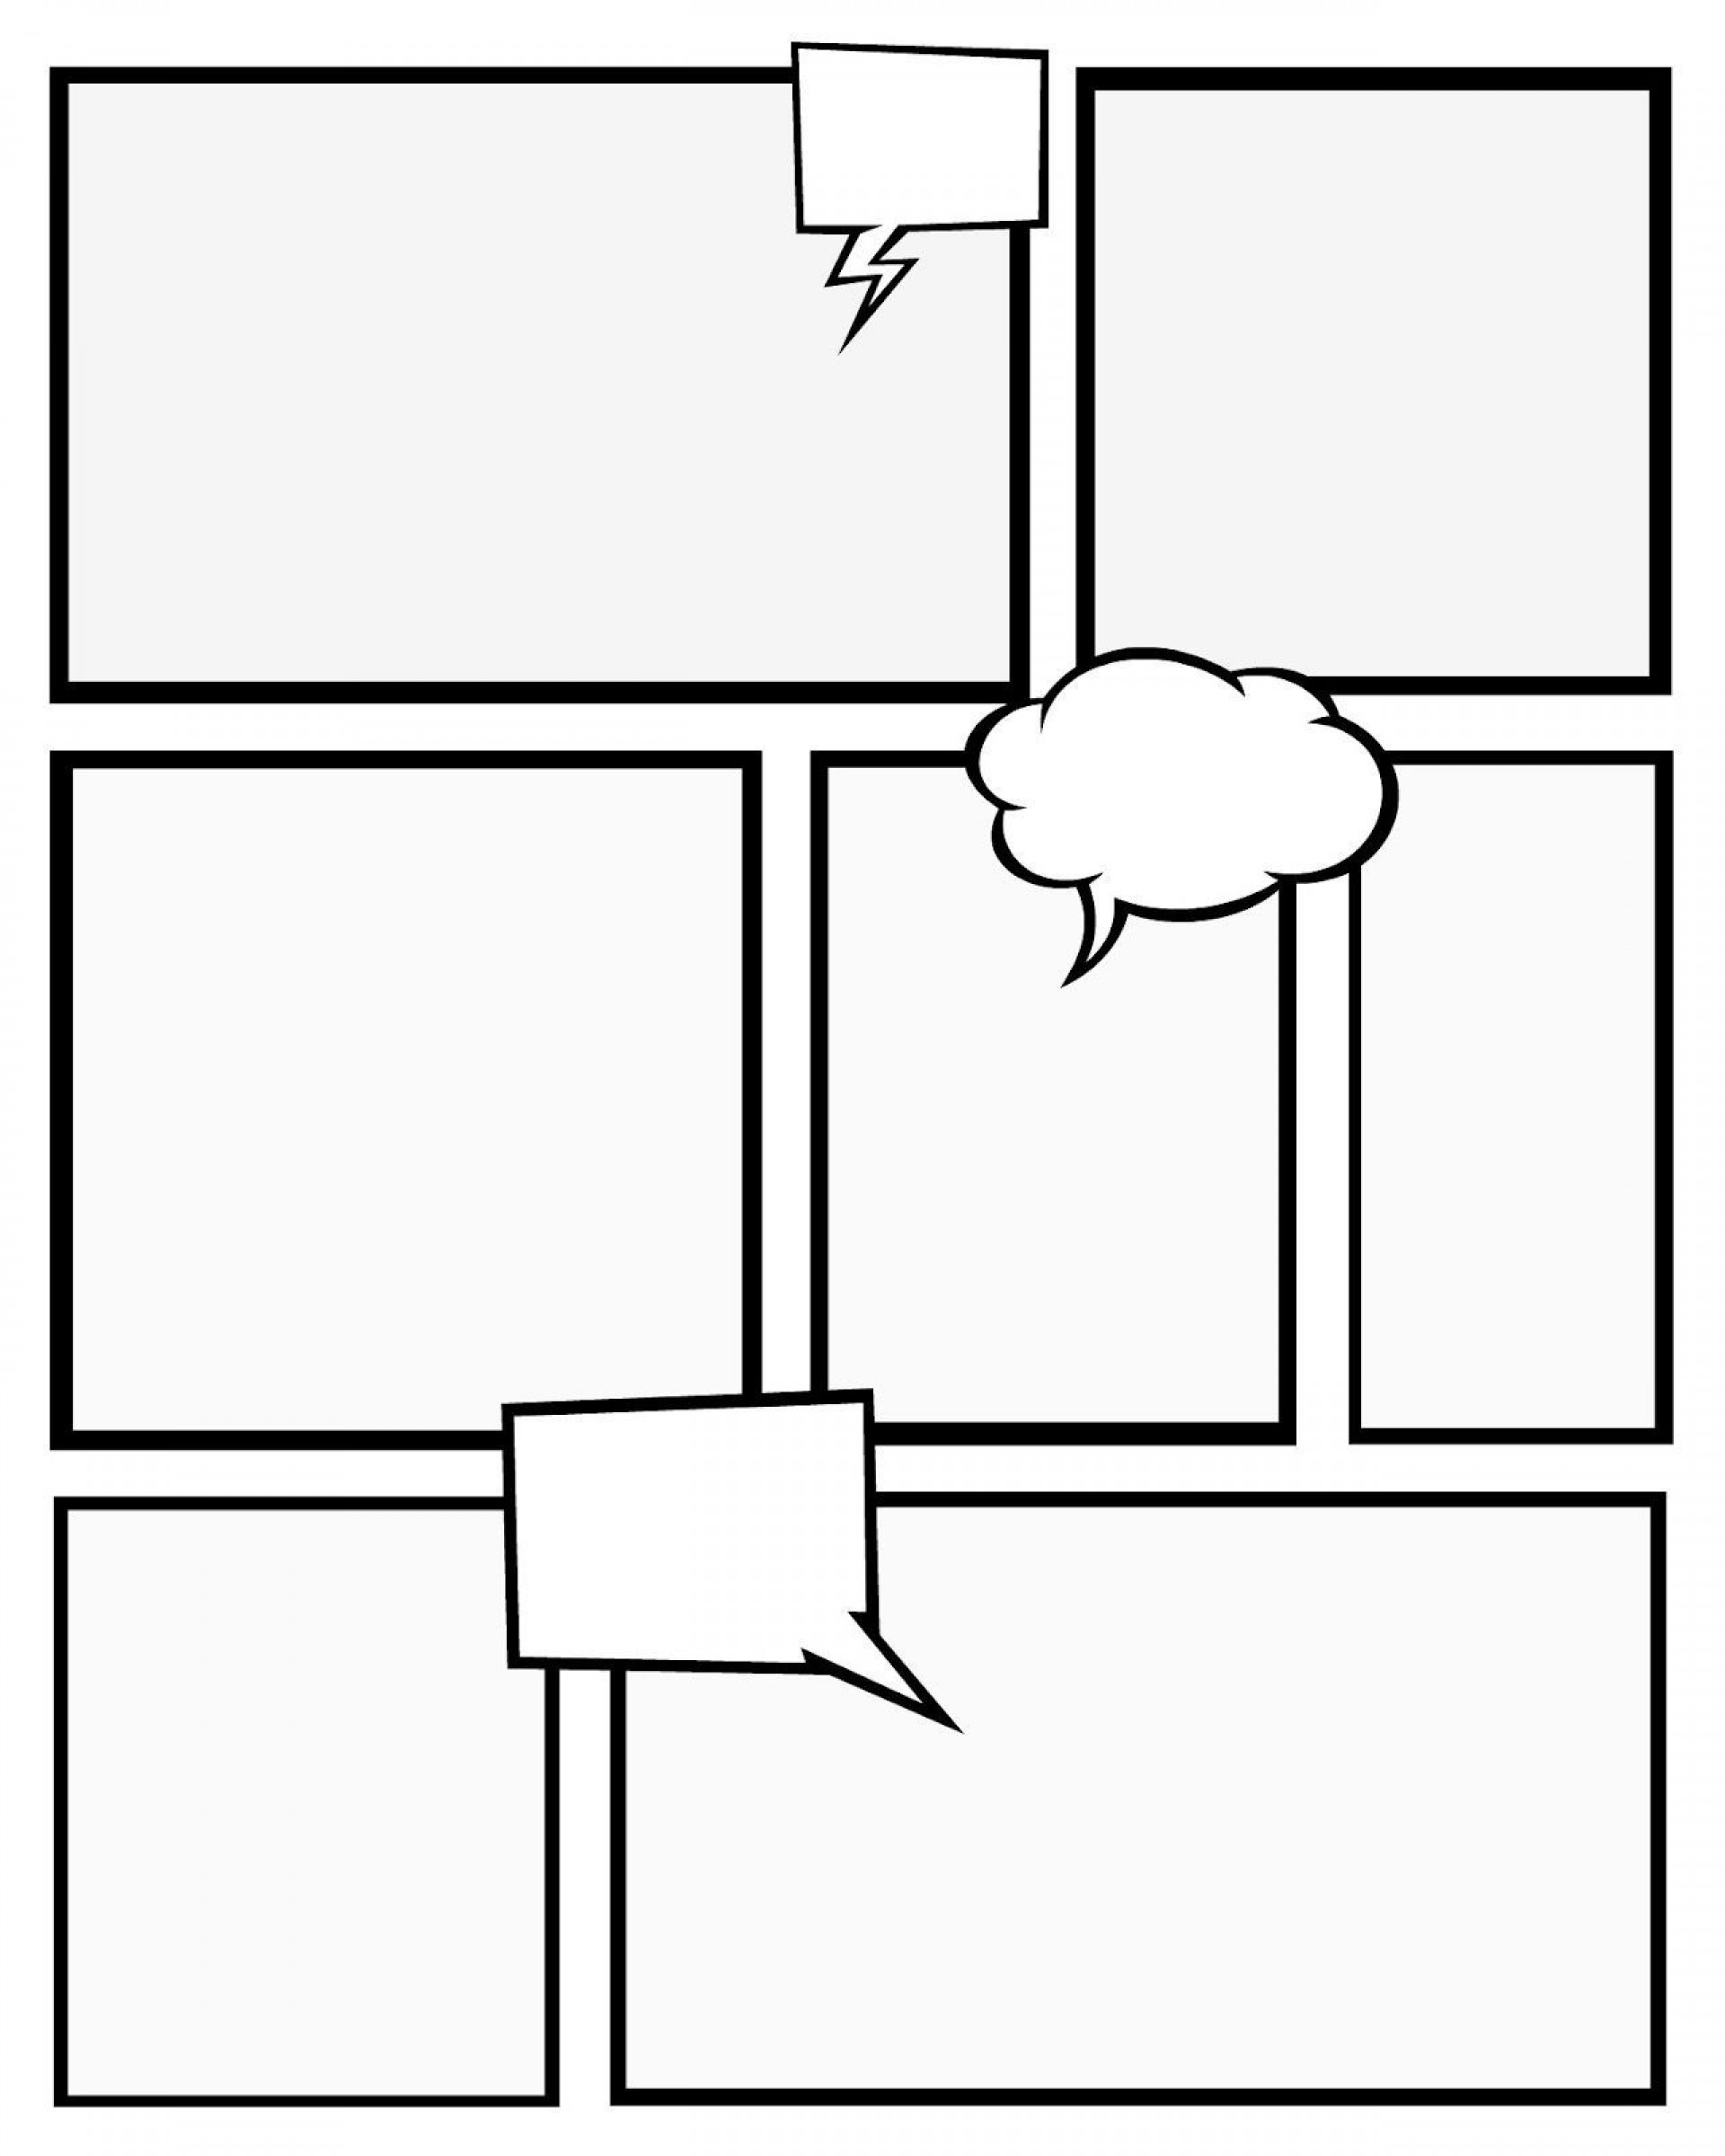 008 Top Comic Strip Layout For Word Image  Book Script Template Microsoft Doc1920